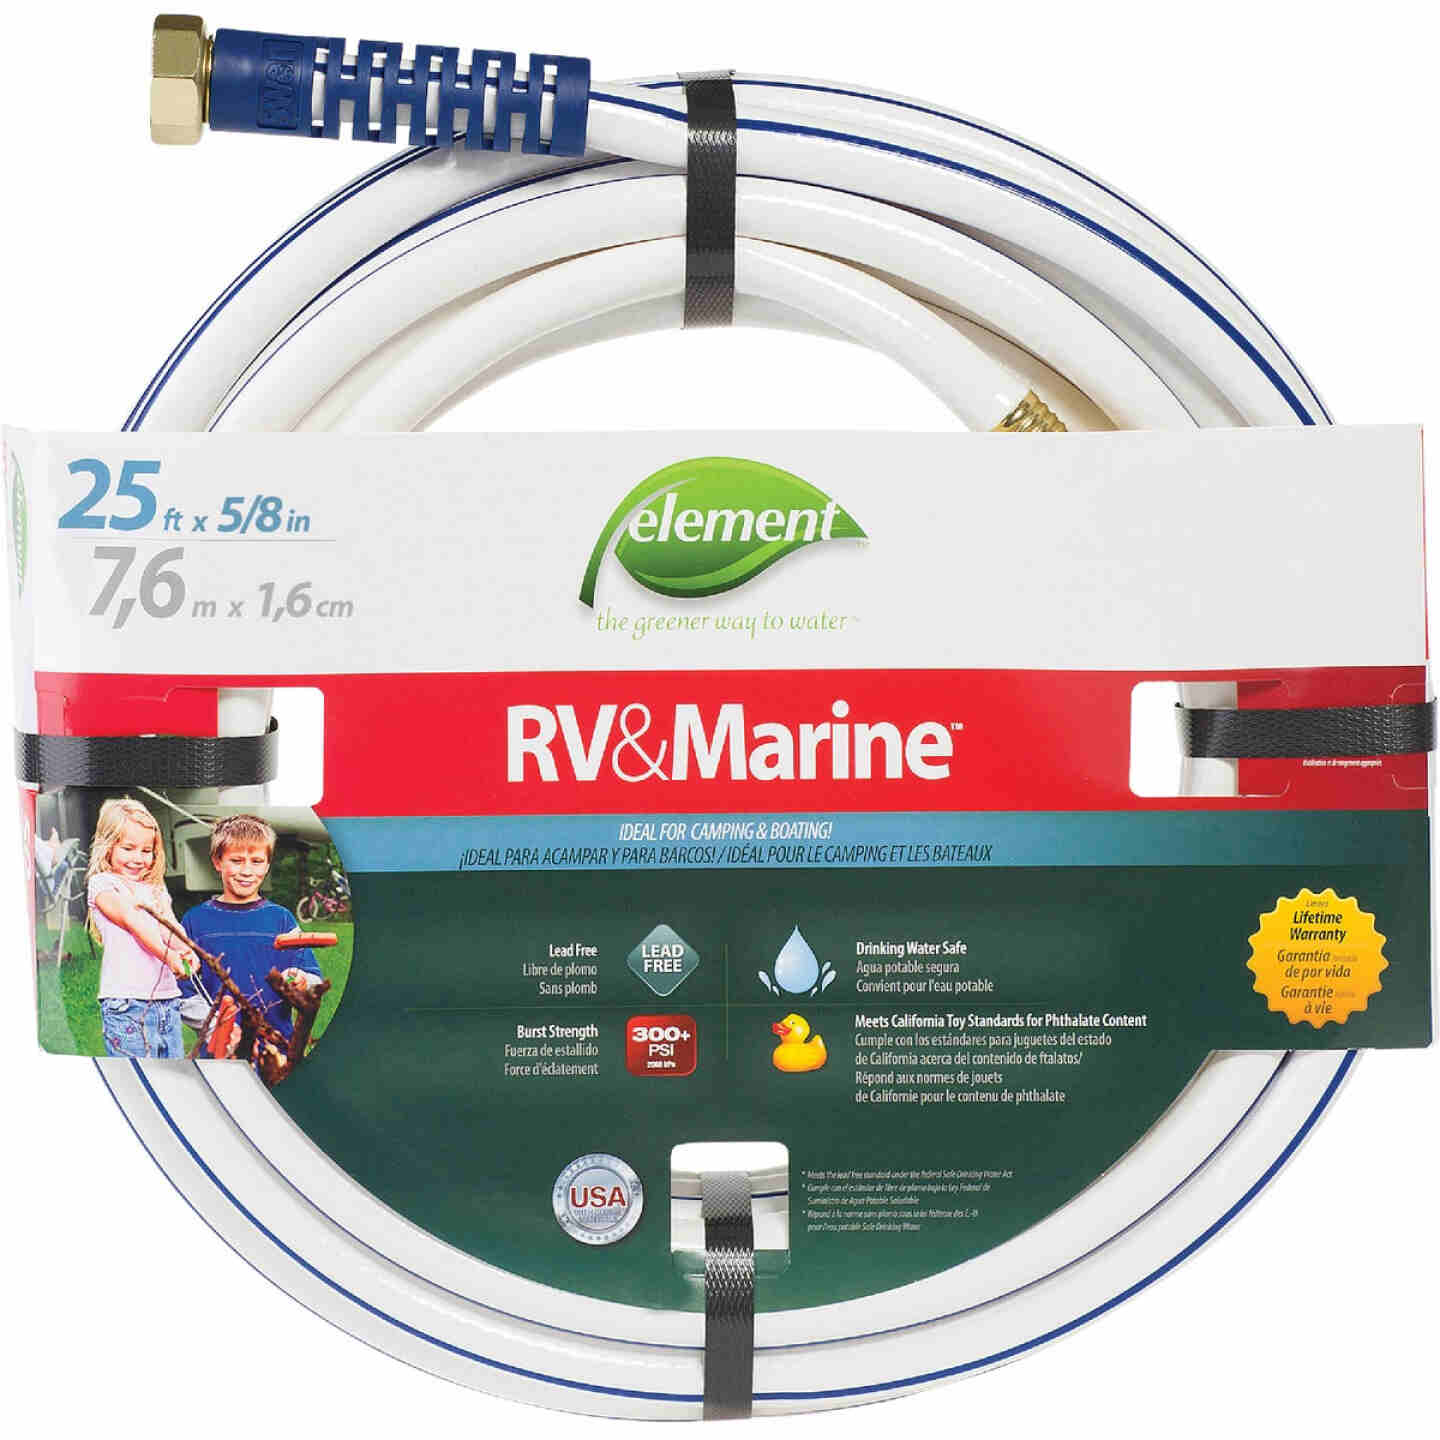 Element 5/8 In. Dia. x 25 Ft. L. Drinking Water Safe RV&Marine Hose Image 1